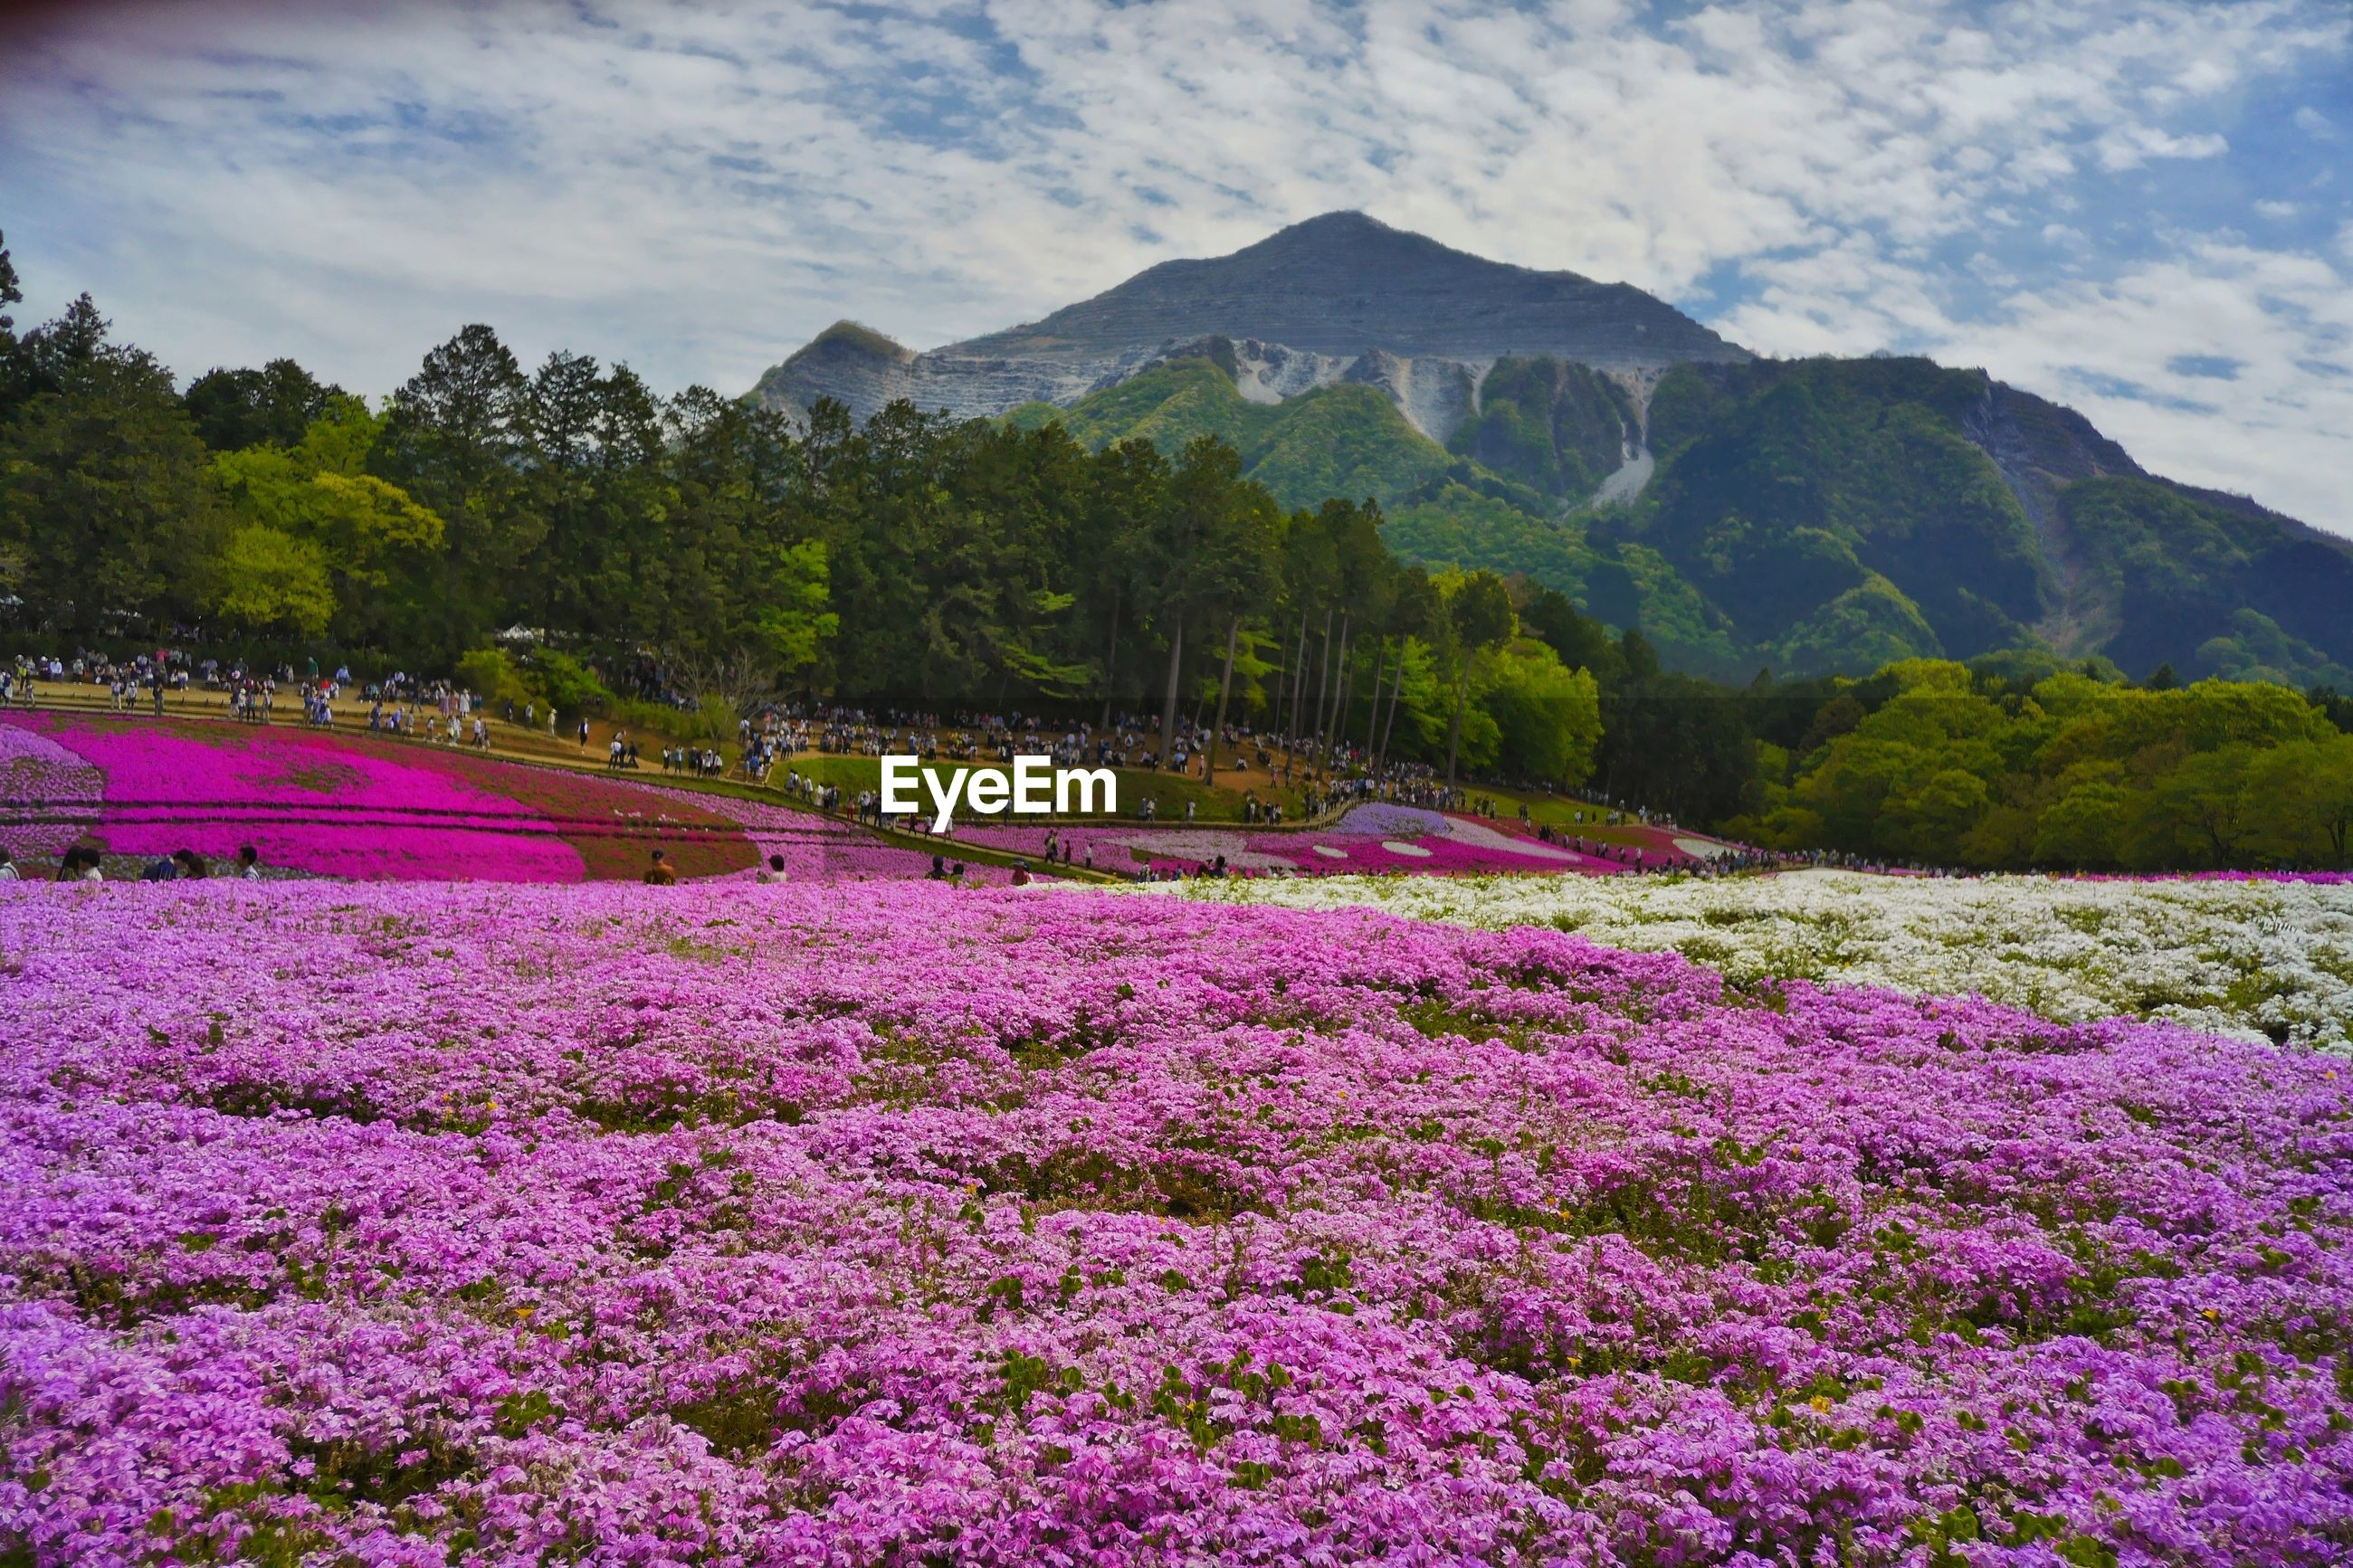 VIEW OF FLOWERS IN MOUNTAINS